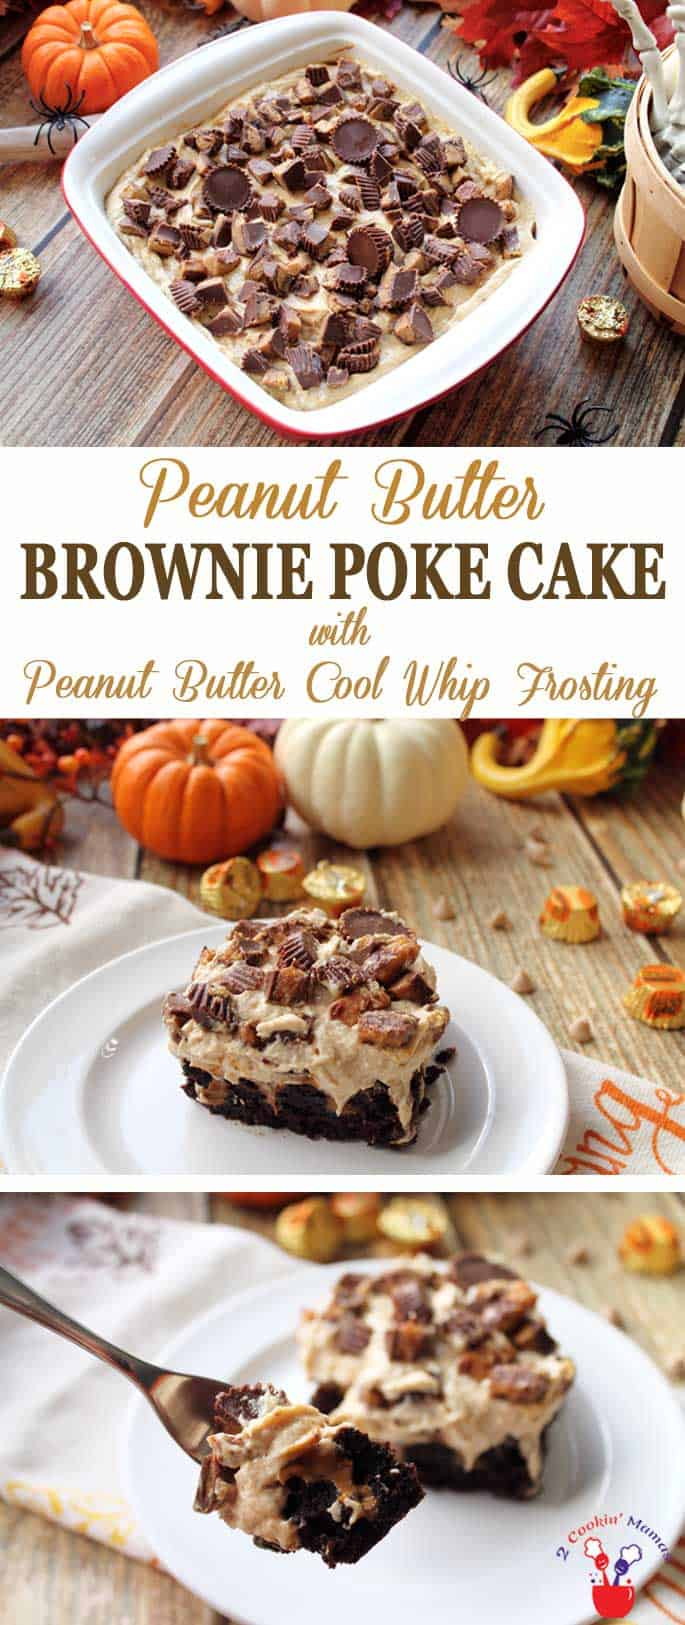 Peanut butter Brownie Poke Cake | 2 Cookin Mamas Calling all chocolate lovers! My Peanut Butter Brownie Poke Cake is the stuff dreams are made of. Rich, dense brownies are filled with peanut butter, spread with a fluffy peanut butter frosting and topped with everyone's favorite, Reese's Peanut Butter Cups. #recipe #dessert #chocolate #brownies